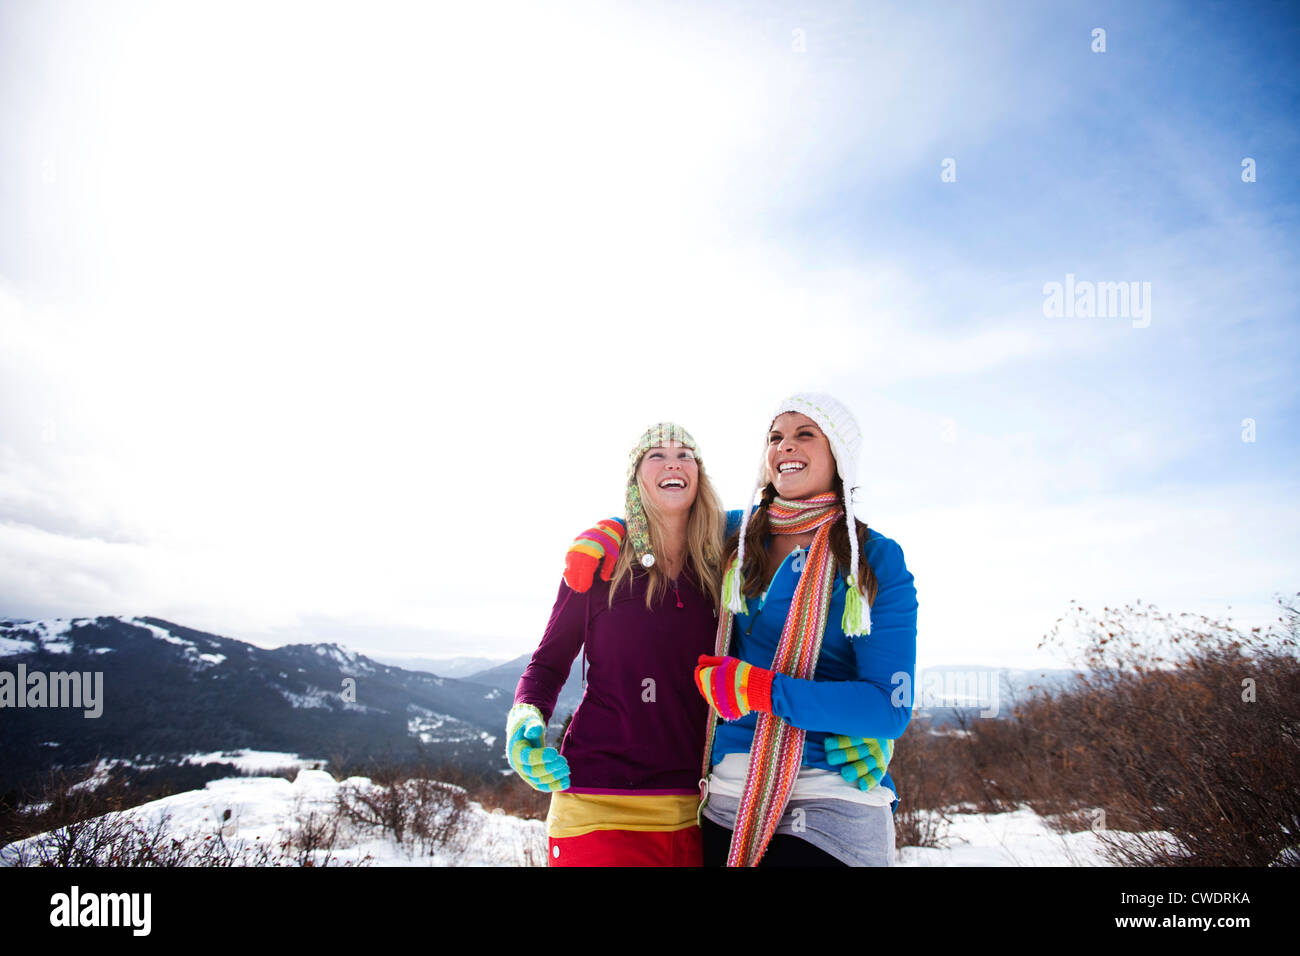 Two young women laugh and smile while hiking in the snow on a beautiful winter day in Idaho. - Stock Image